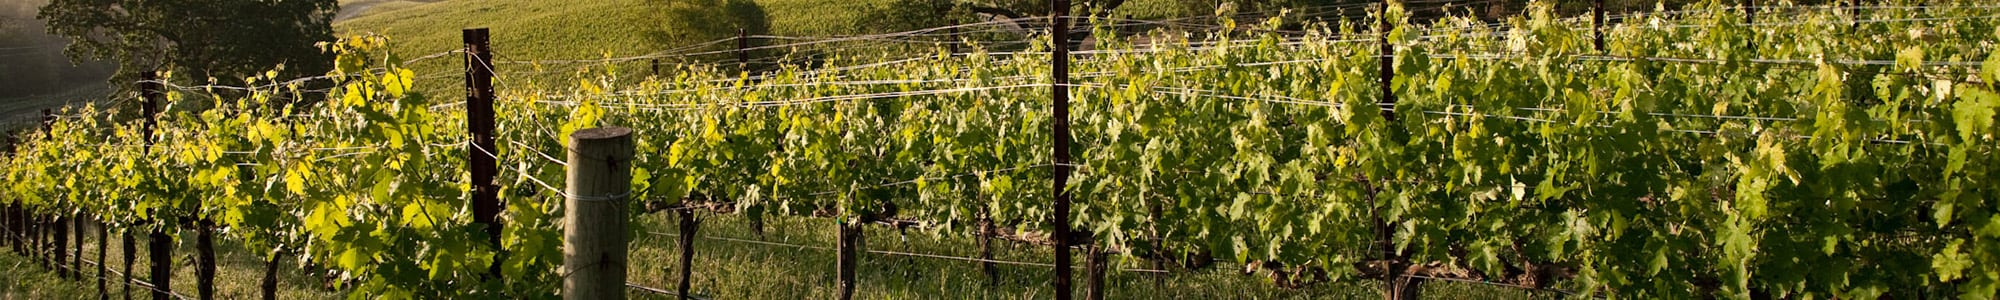 Napa Grape Vines About